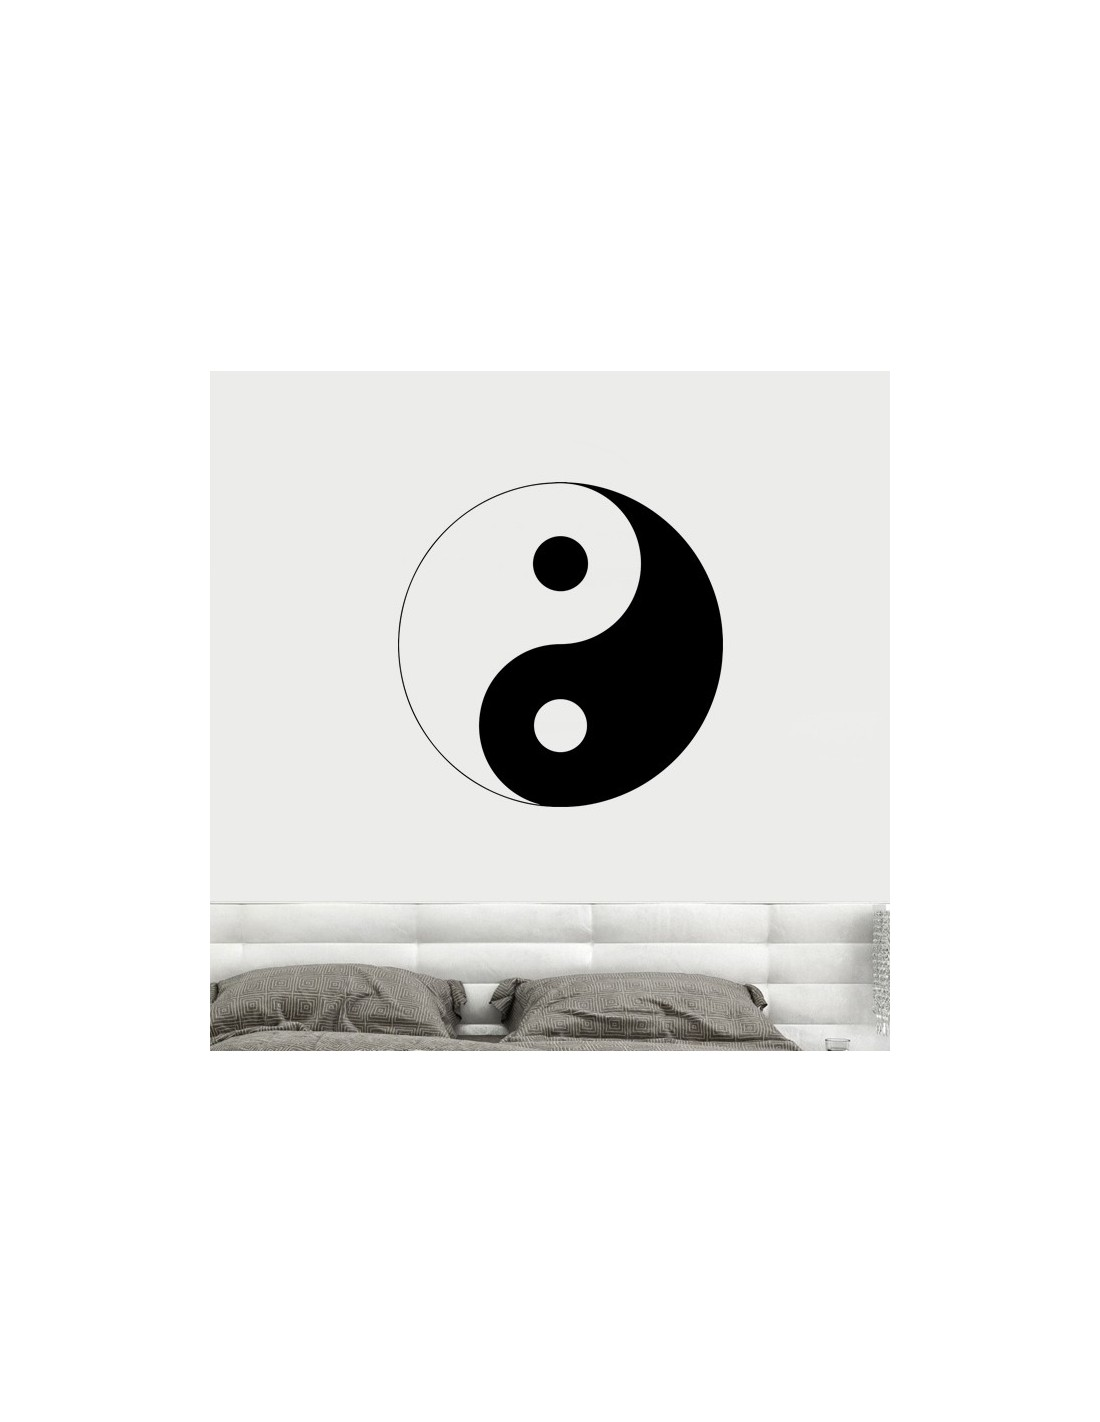 Sticker de d coration le yin et le yang stickers muraux for Lit yin yang